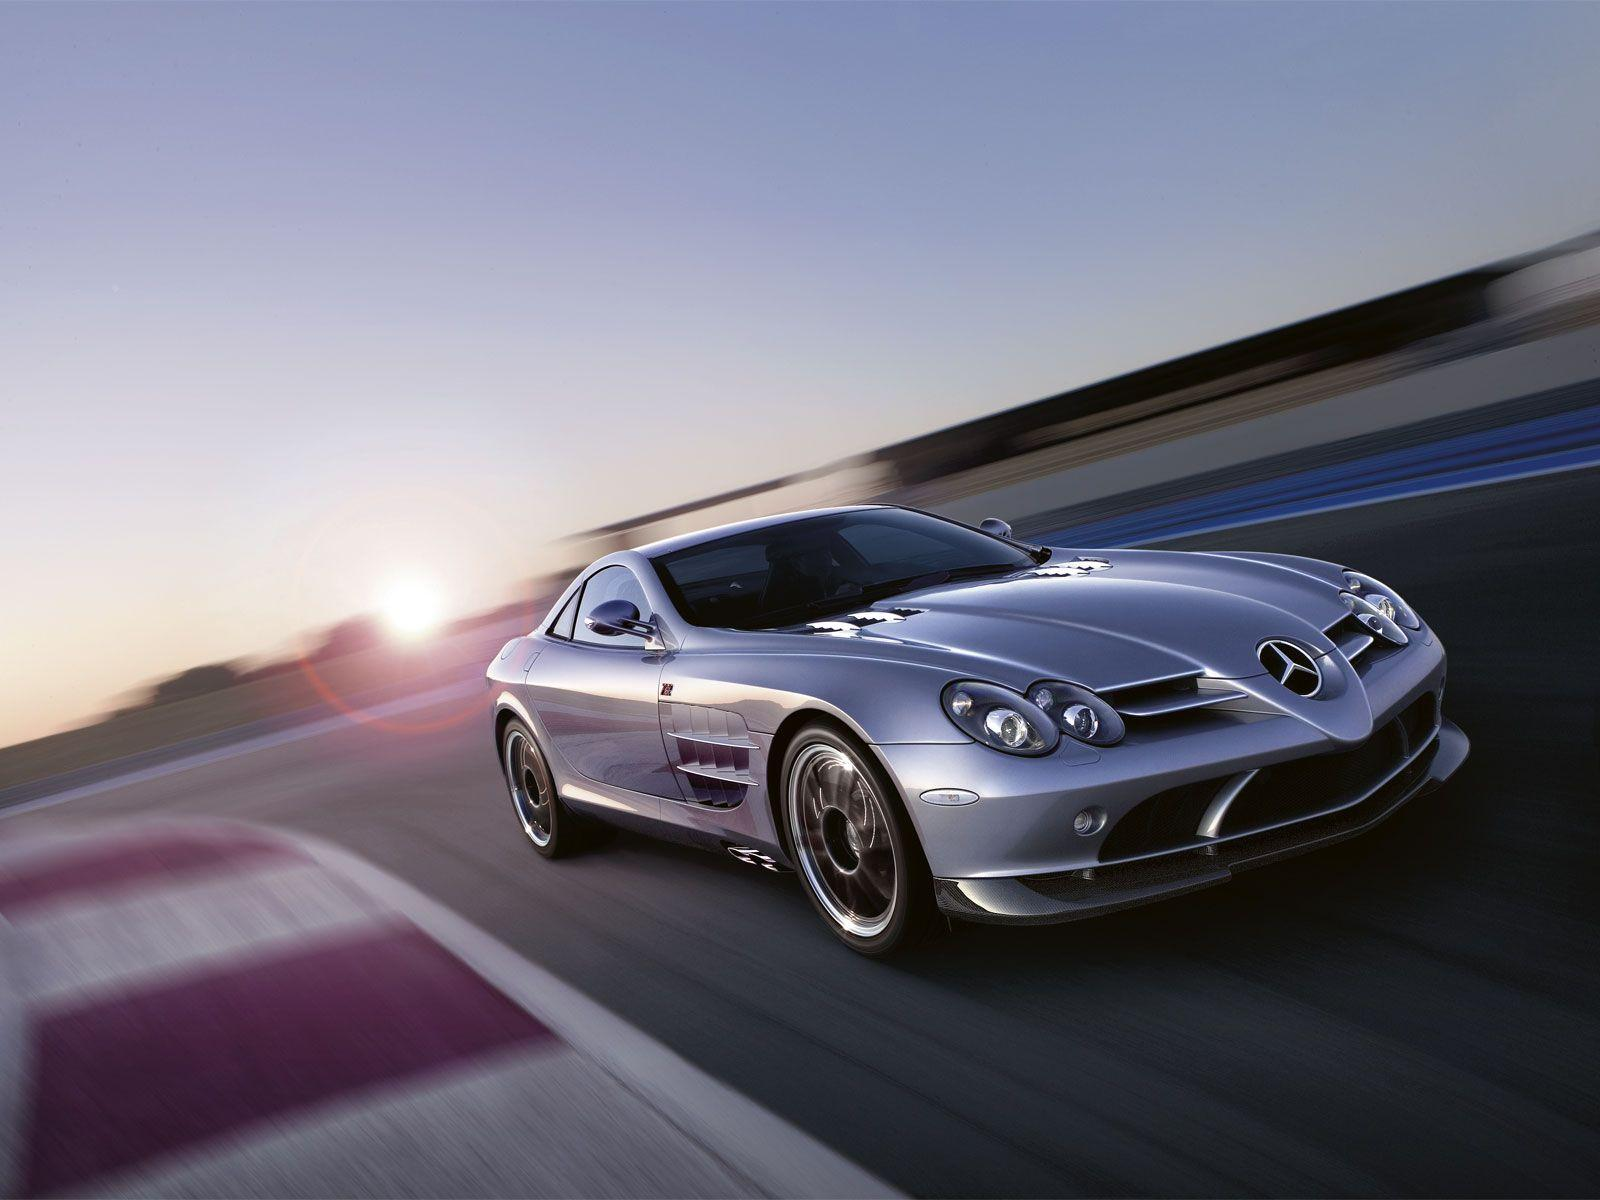 Mercedes benz slr mclaren wallpapers wallpaper cave for Mercedes benz slr mclaren price